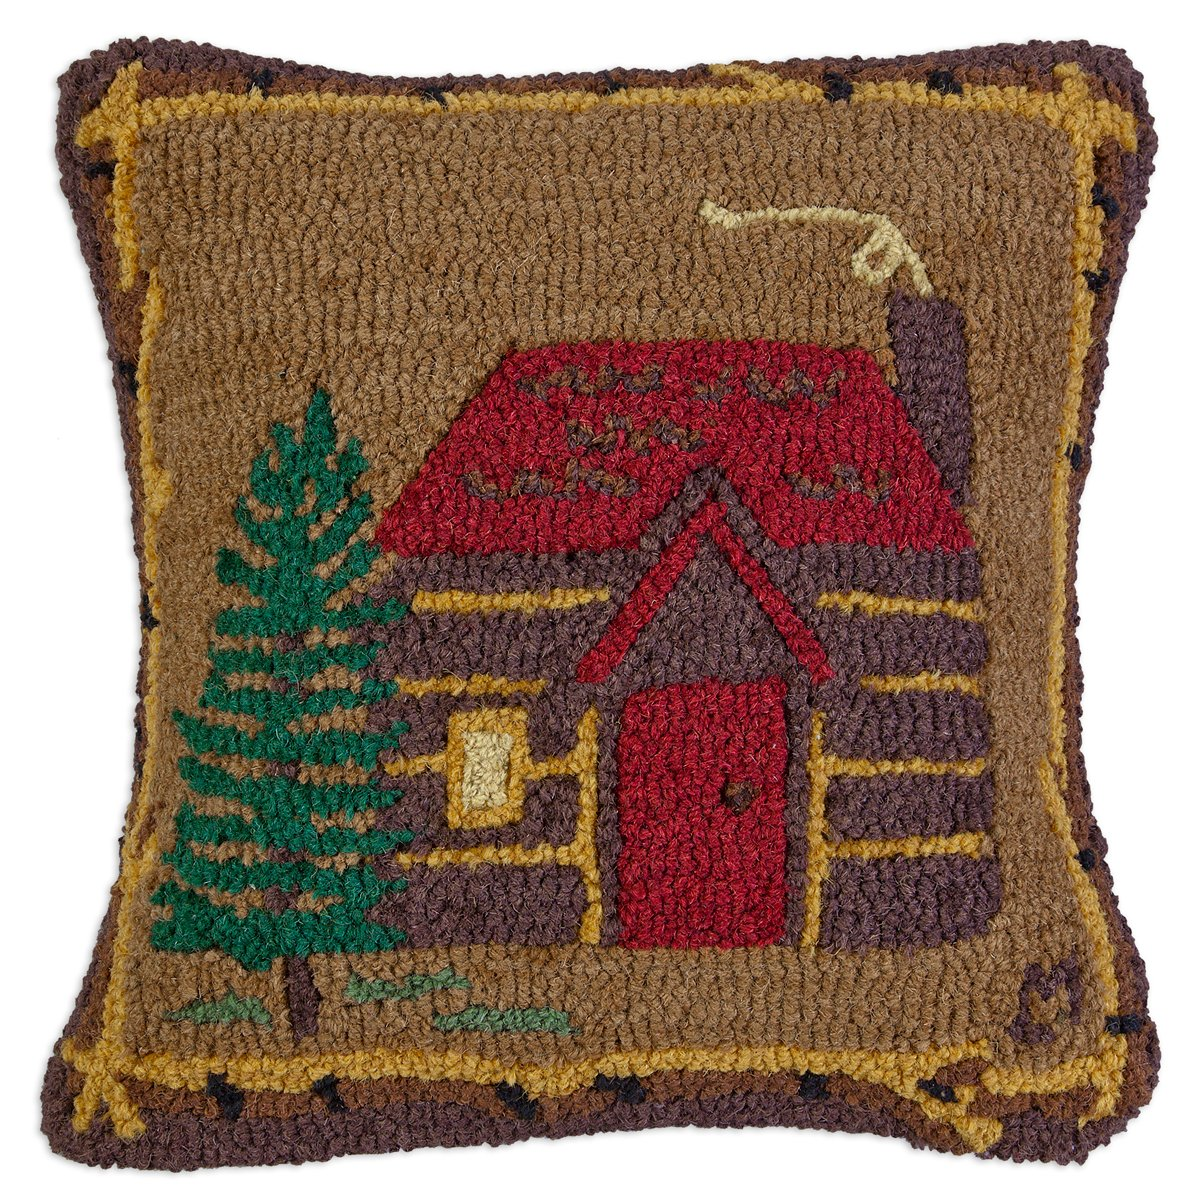 Cabin in the Woods - 18'' Hooked Pillow from Chandler 4 Corners by Chandler 4 Corners (Image #1)